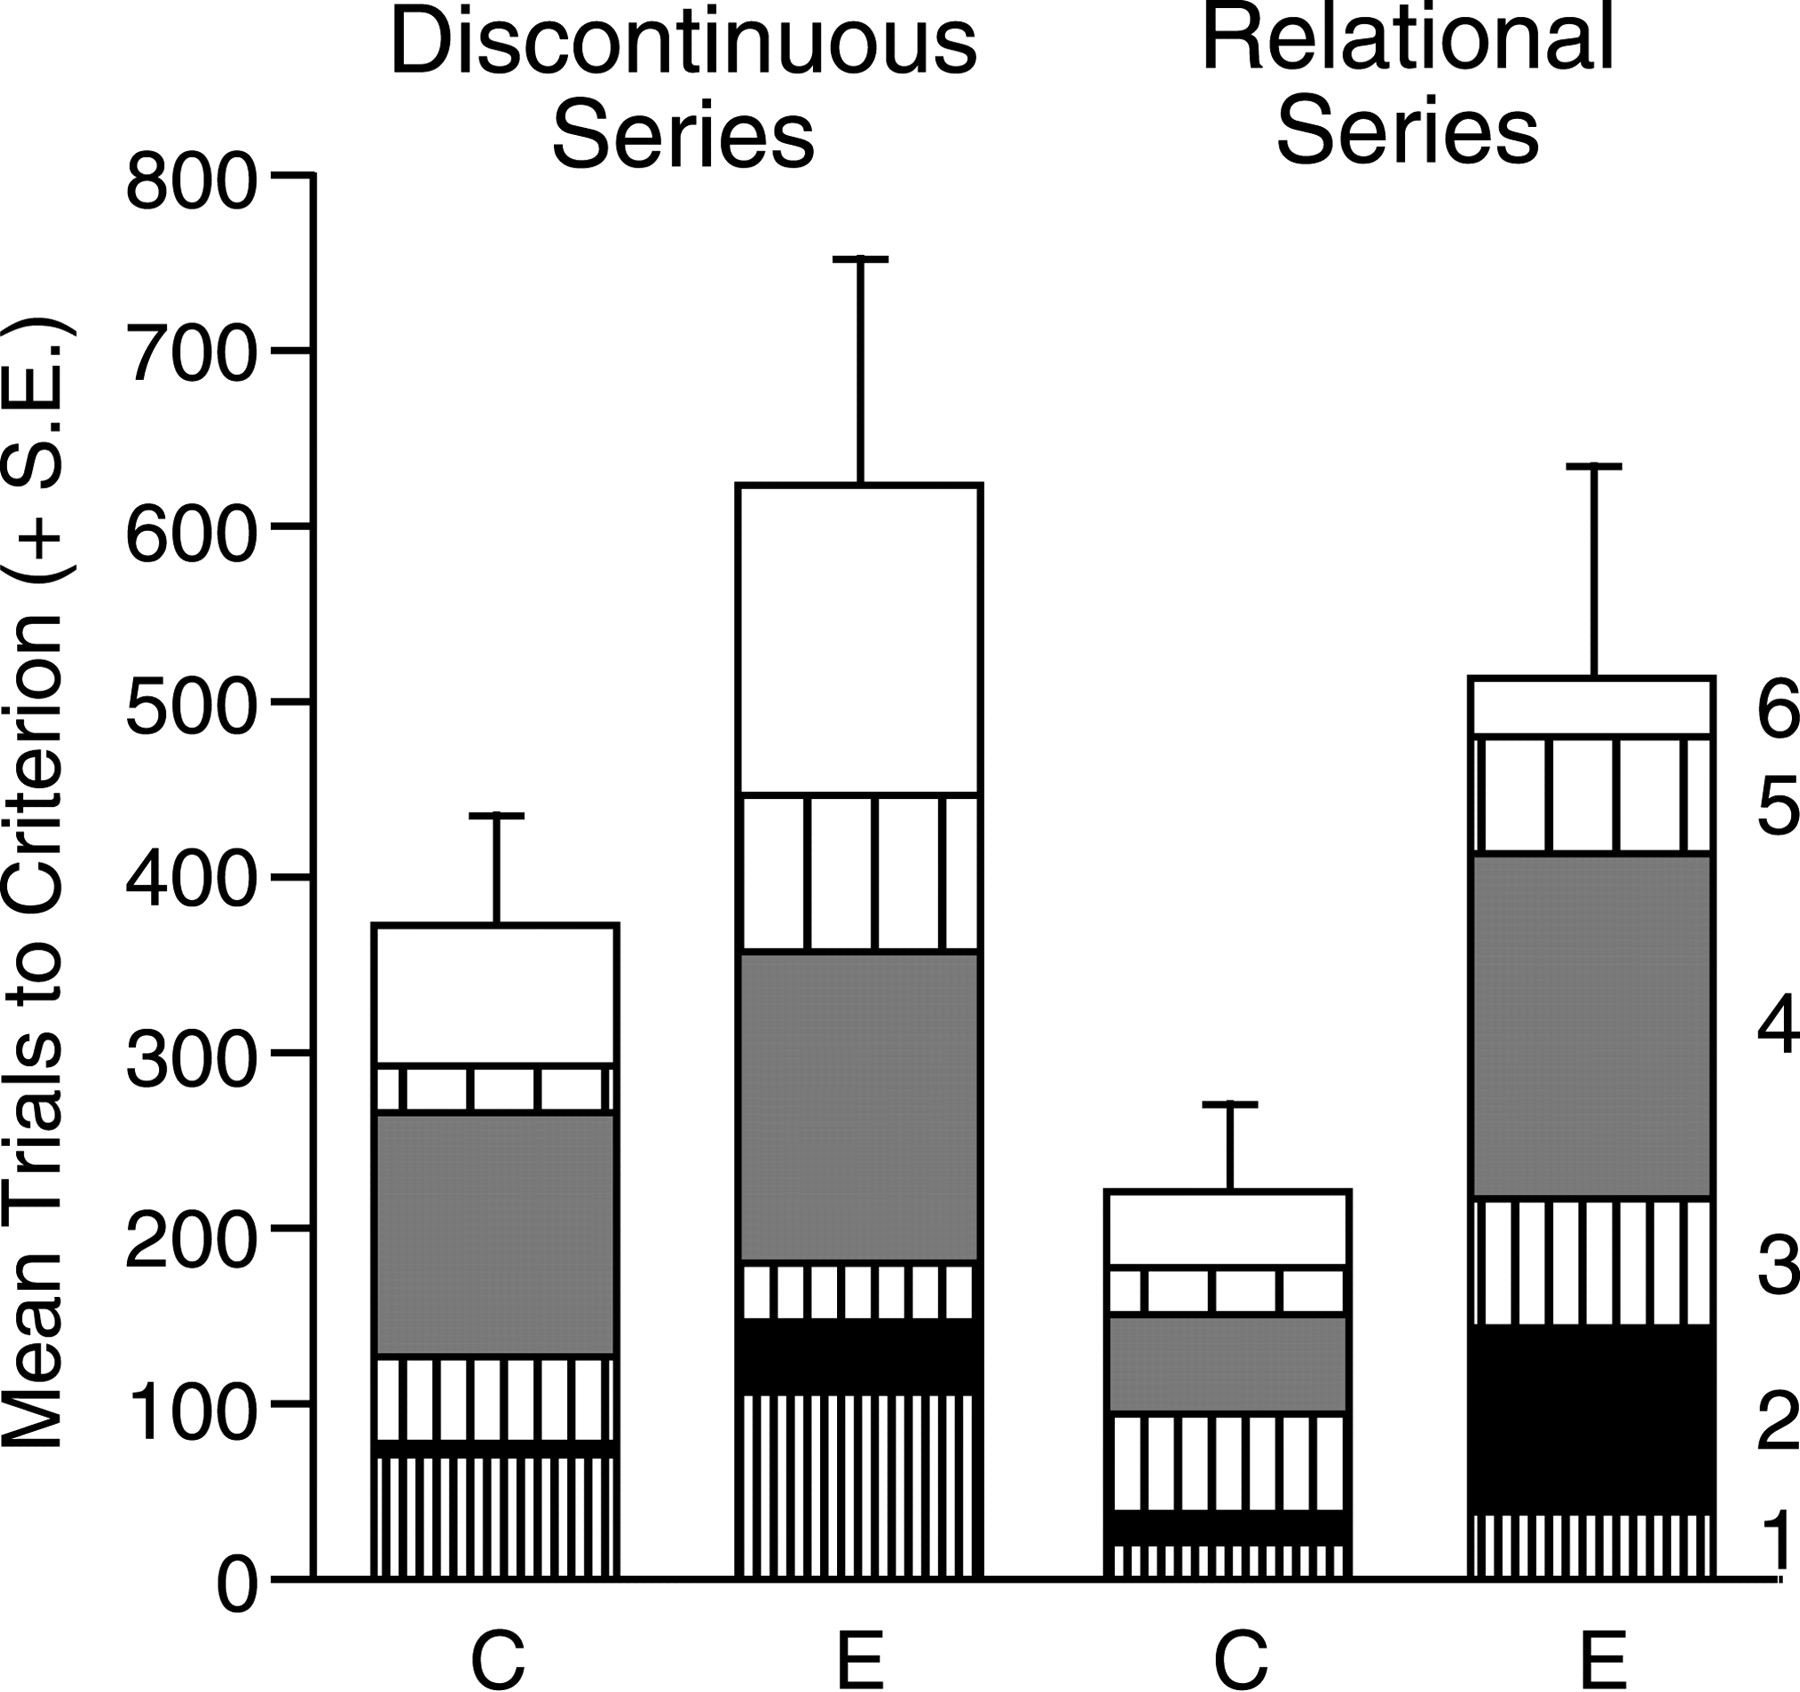 Entorhinal Cortex Lesions Disrupt The Relational Organization Of A B C Circuit Diagram Download Figure